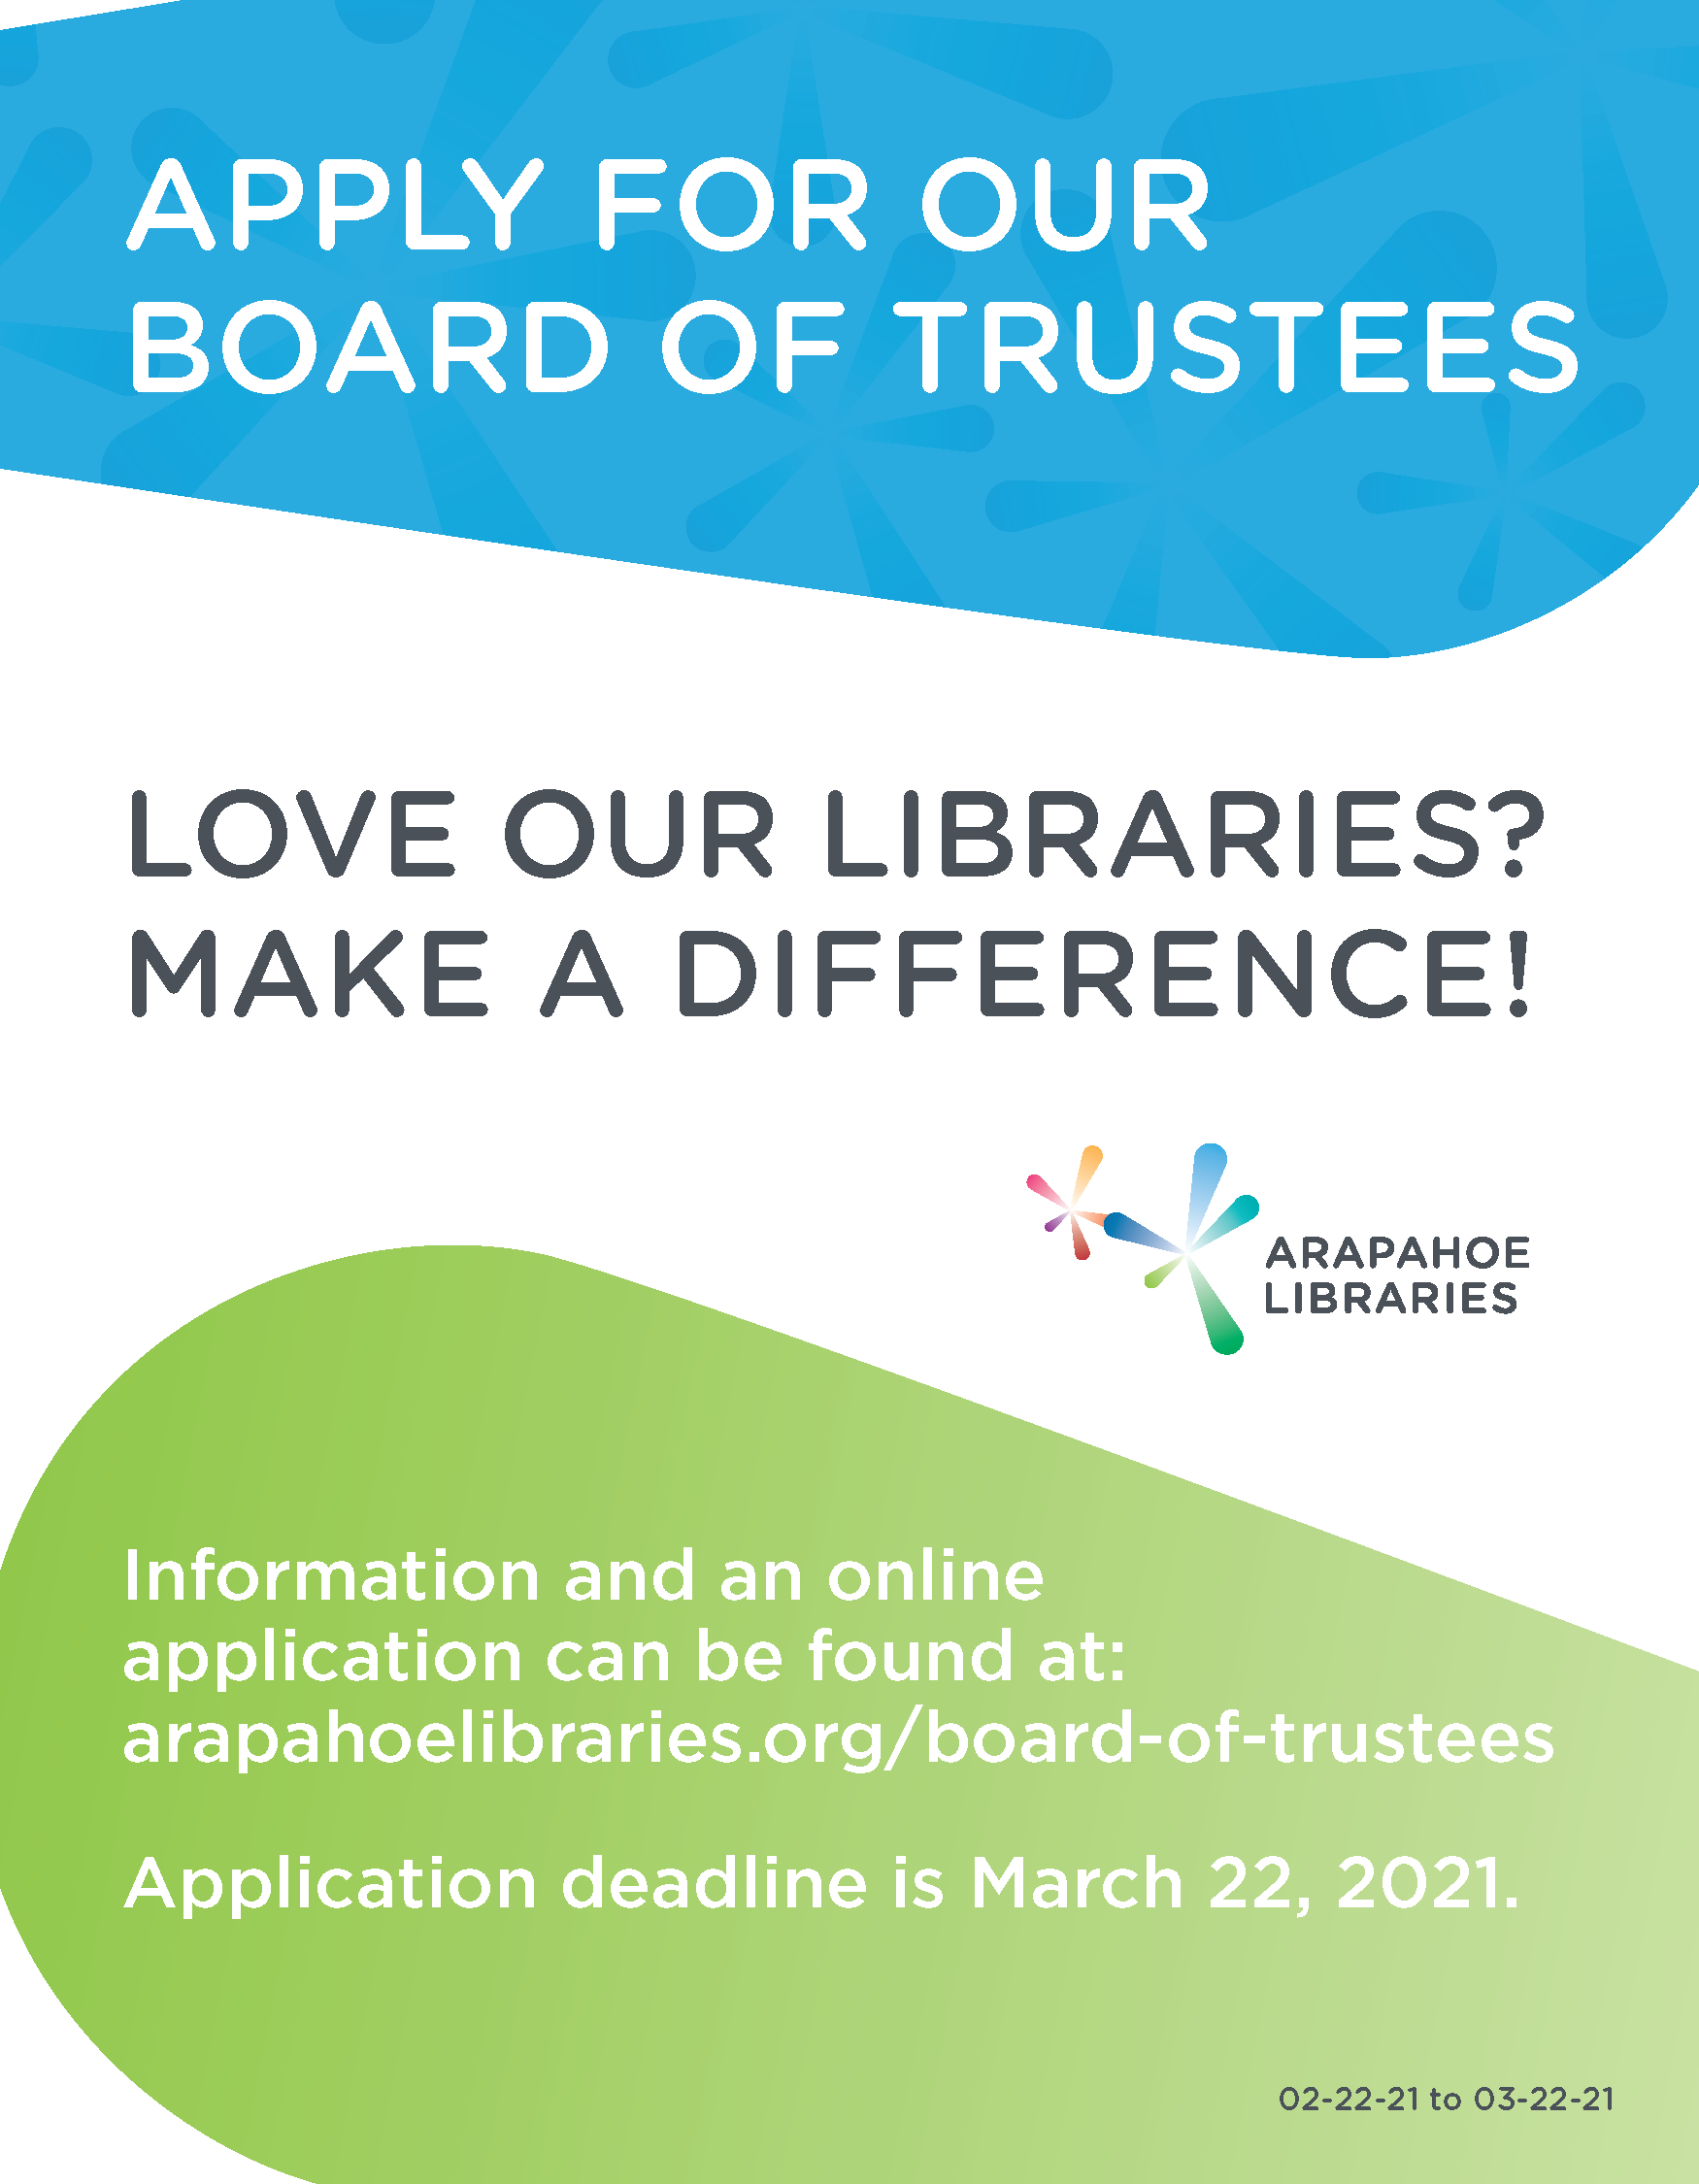 Apply for the Arapahoe Libraries Board of Trustees. Love our libraries? Make a difference! Information and an online application can be found with this link or at: arapahoelibaries.org/board-of-trustees. Application deadline is March 22, 2021.